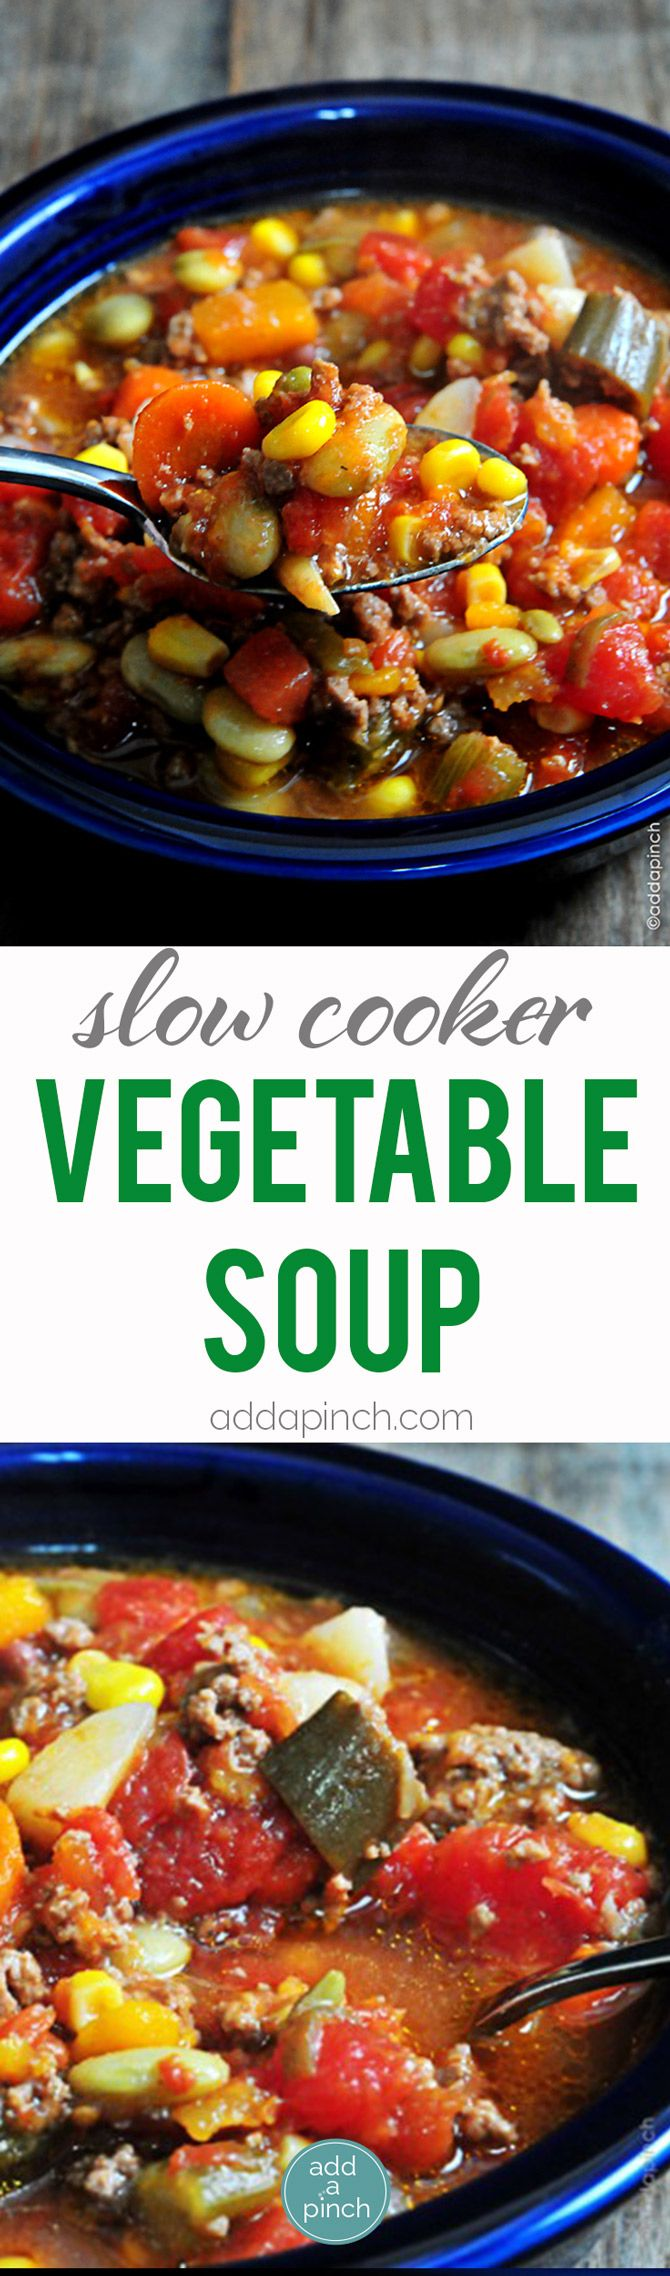 This Slow Cooker Vegetable Soup recipe is so simple to make and absolutely scrumptious. A definite family favorite!